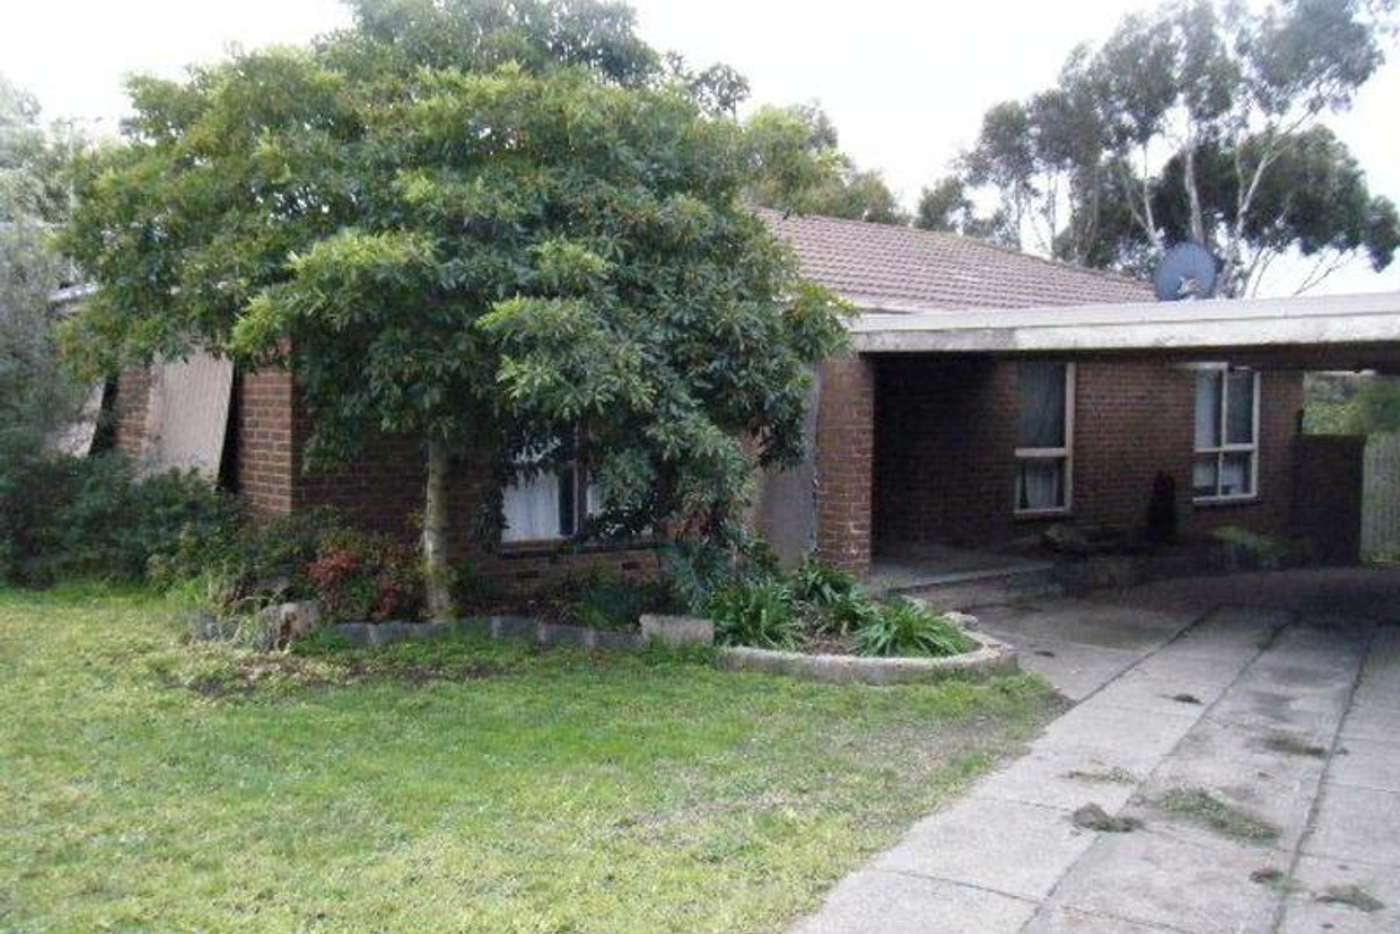 Main view of Homely house listing, 9 Mitford Cresent, Craigieburn VIC 3064